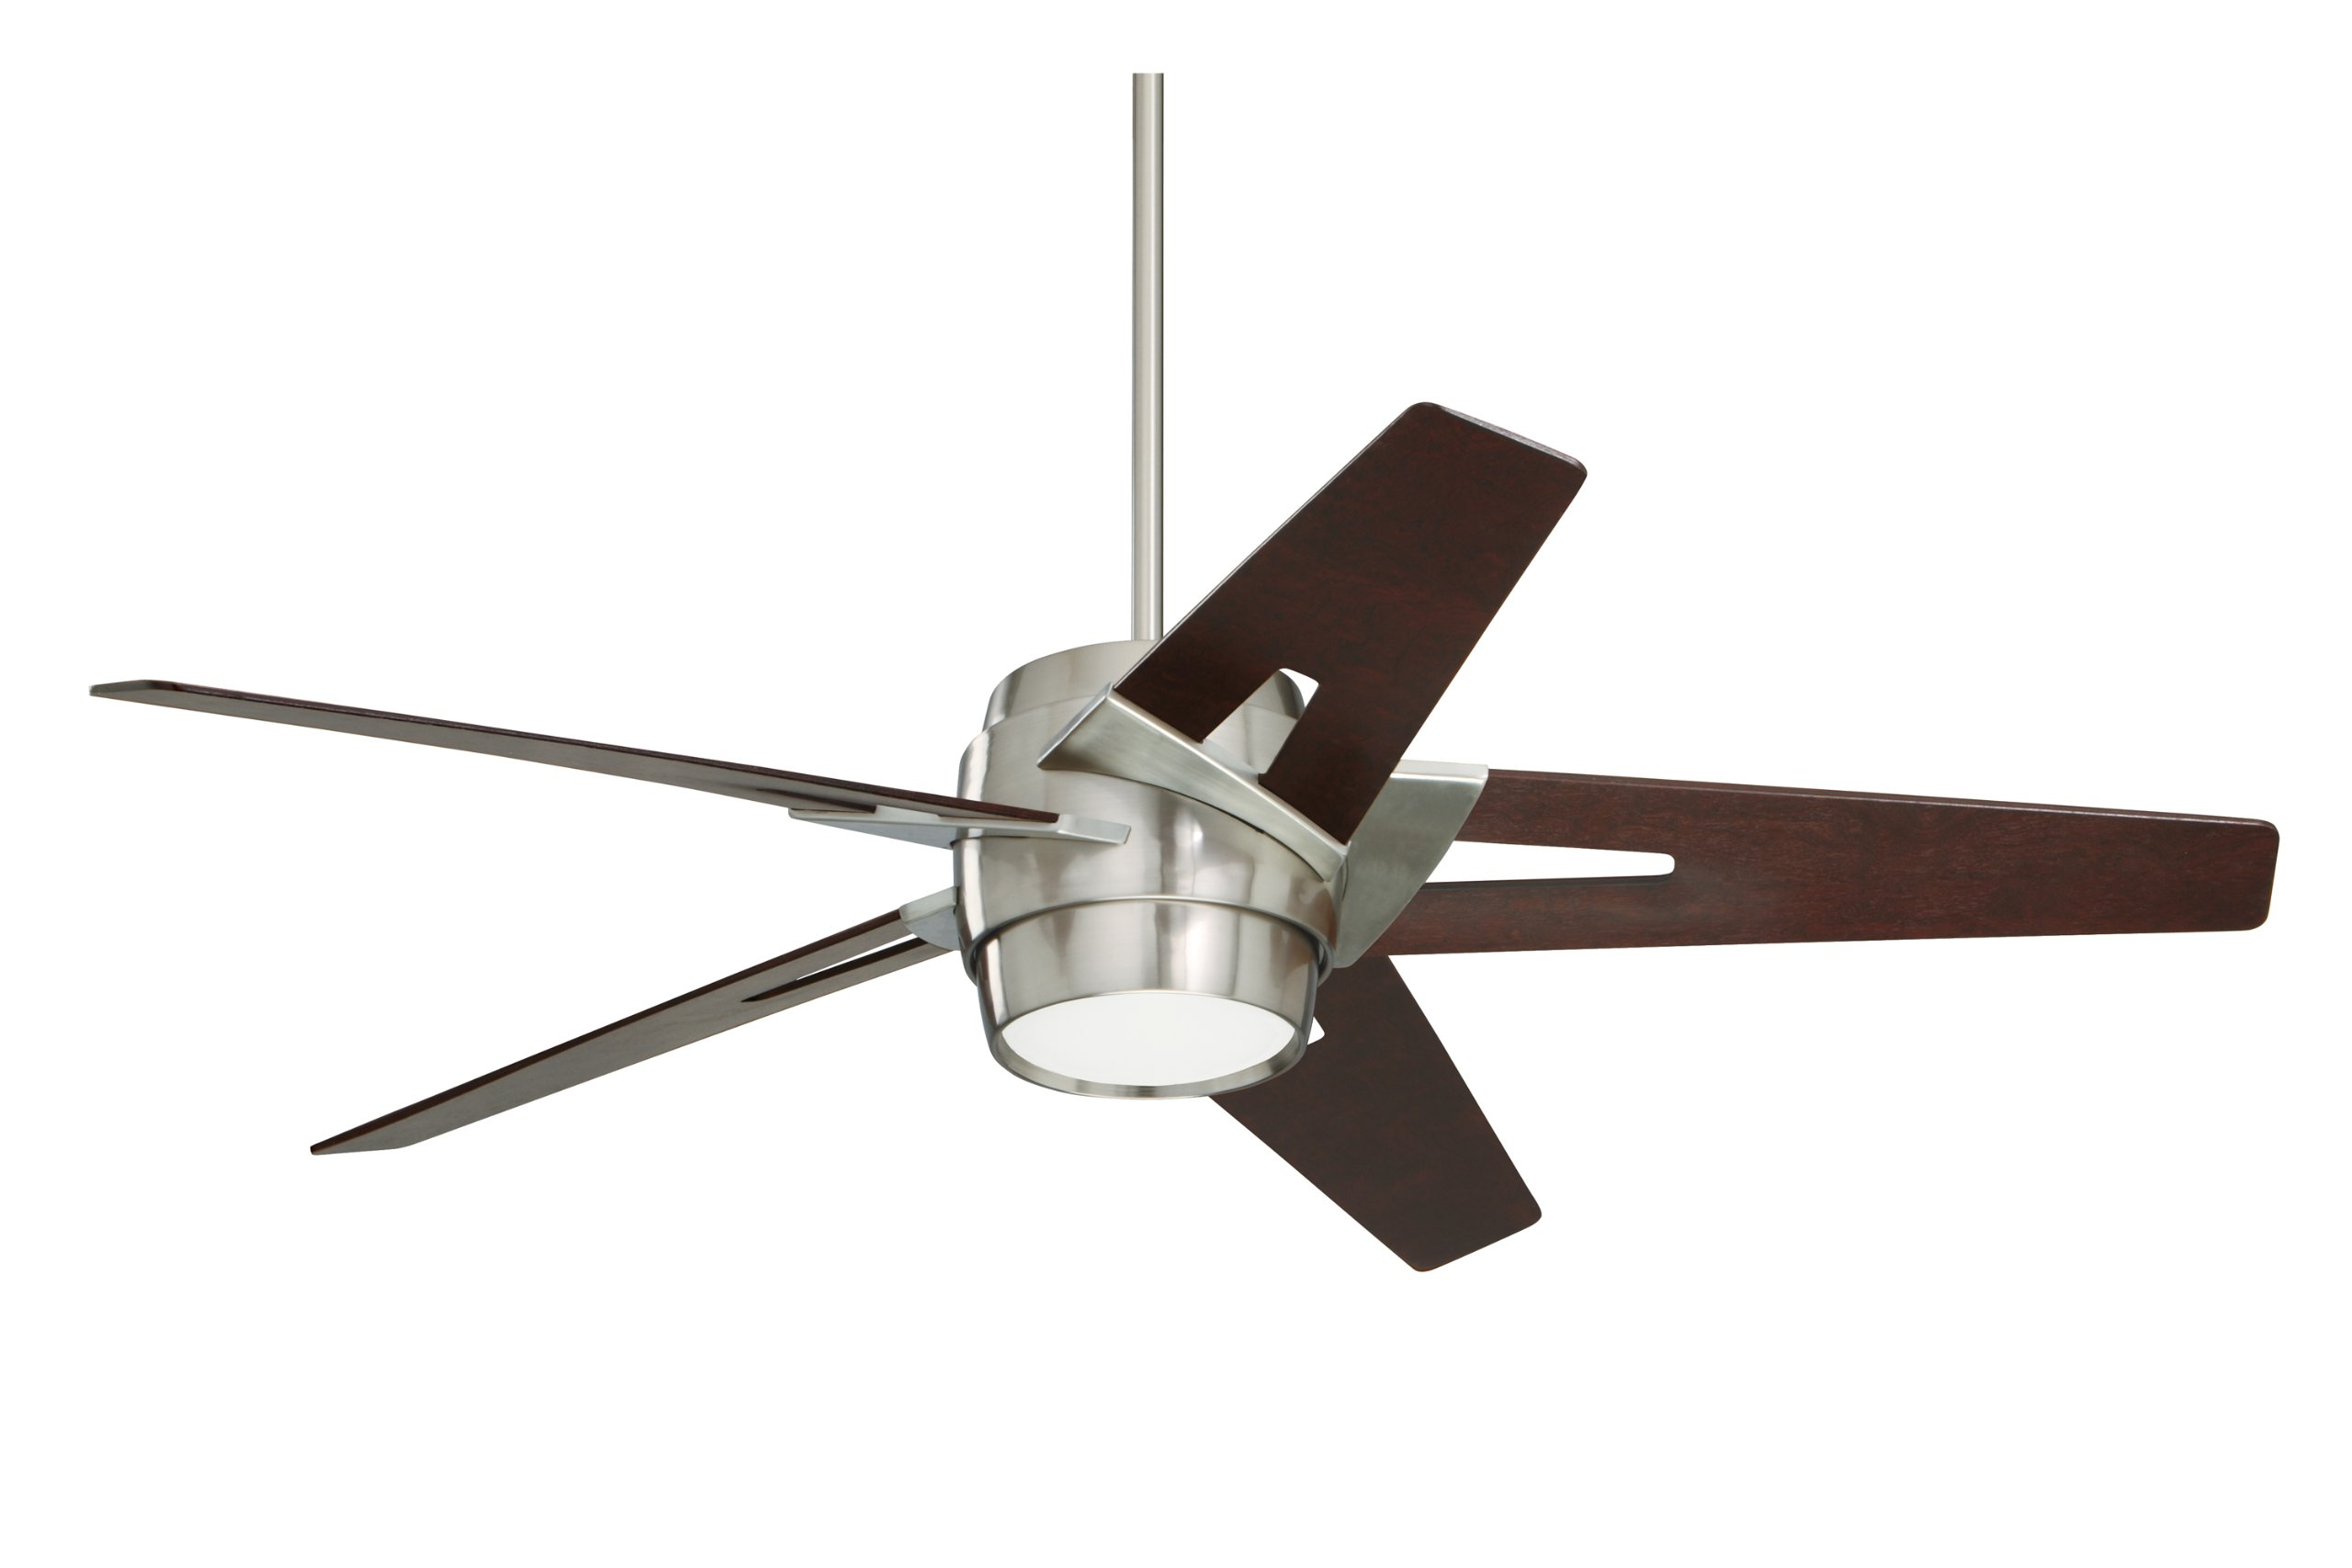 Emerson Ceiling Fans CF550DMBS Luxe Eco Modern Ceiling Fans With Light And Wall Control, 54-Inch Blades, Brushed Steel Finish